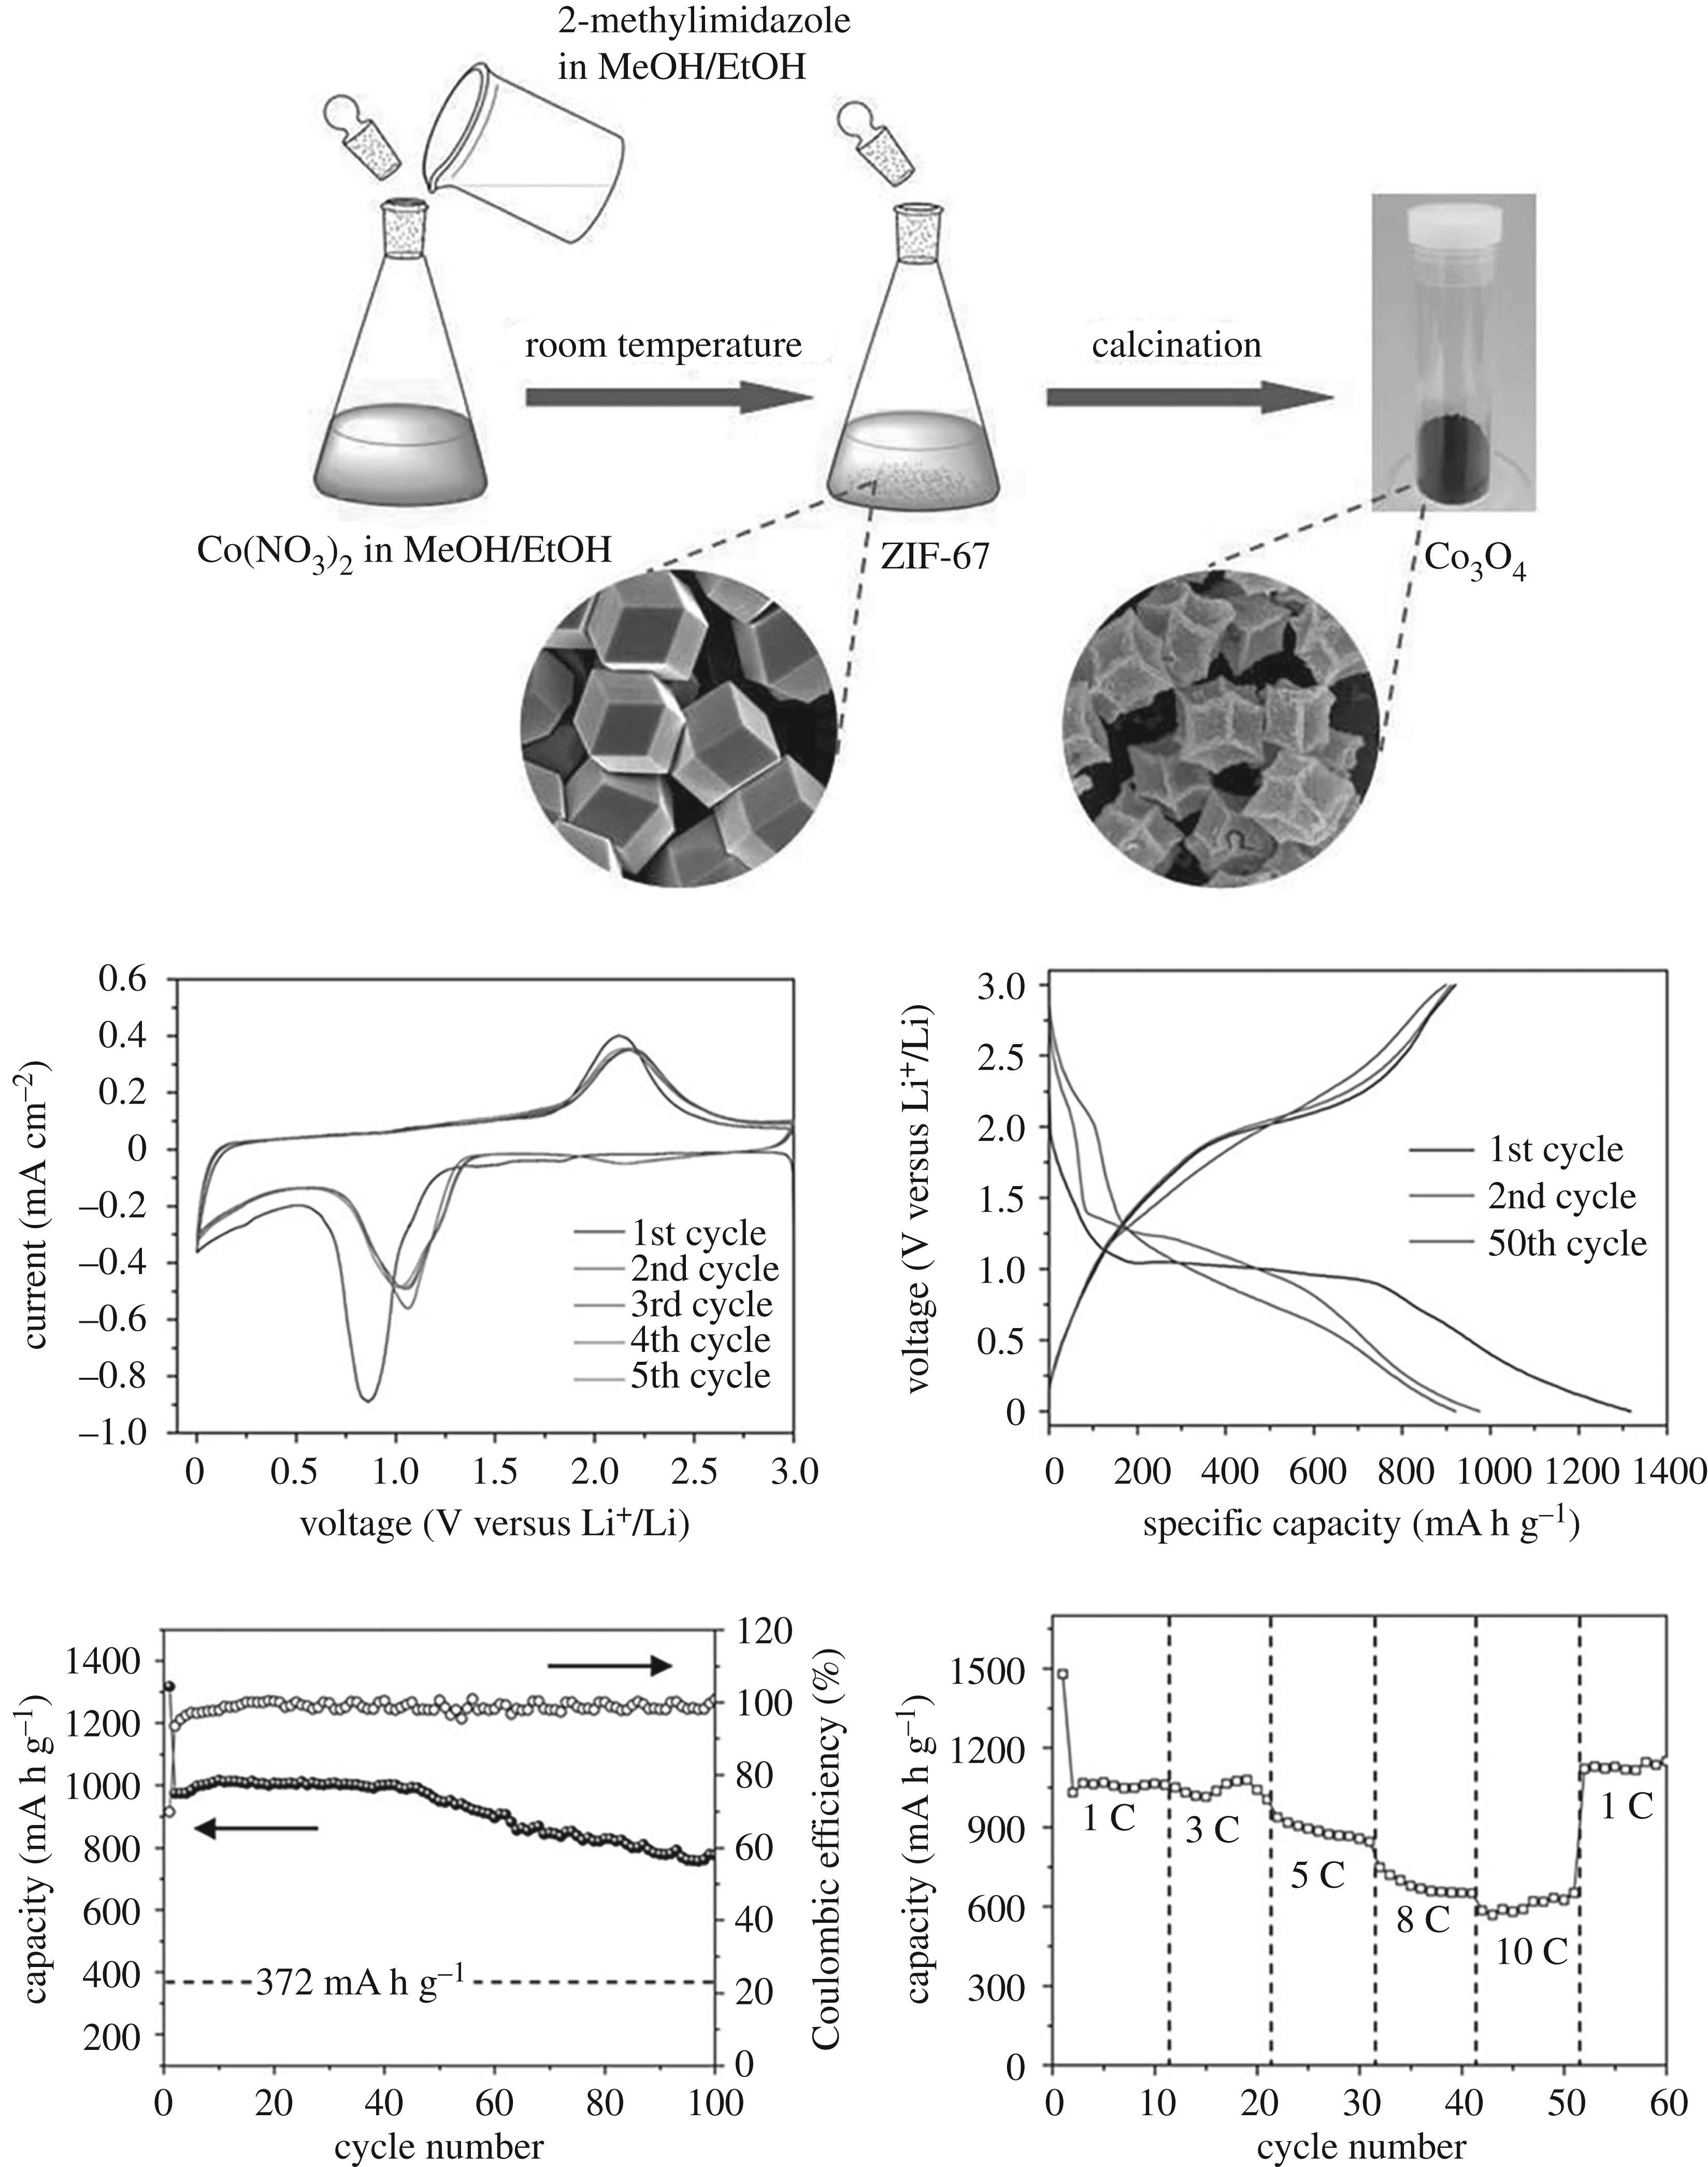 The application of metal-organic frameworks in electrode